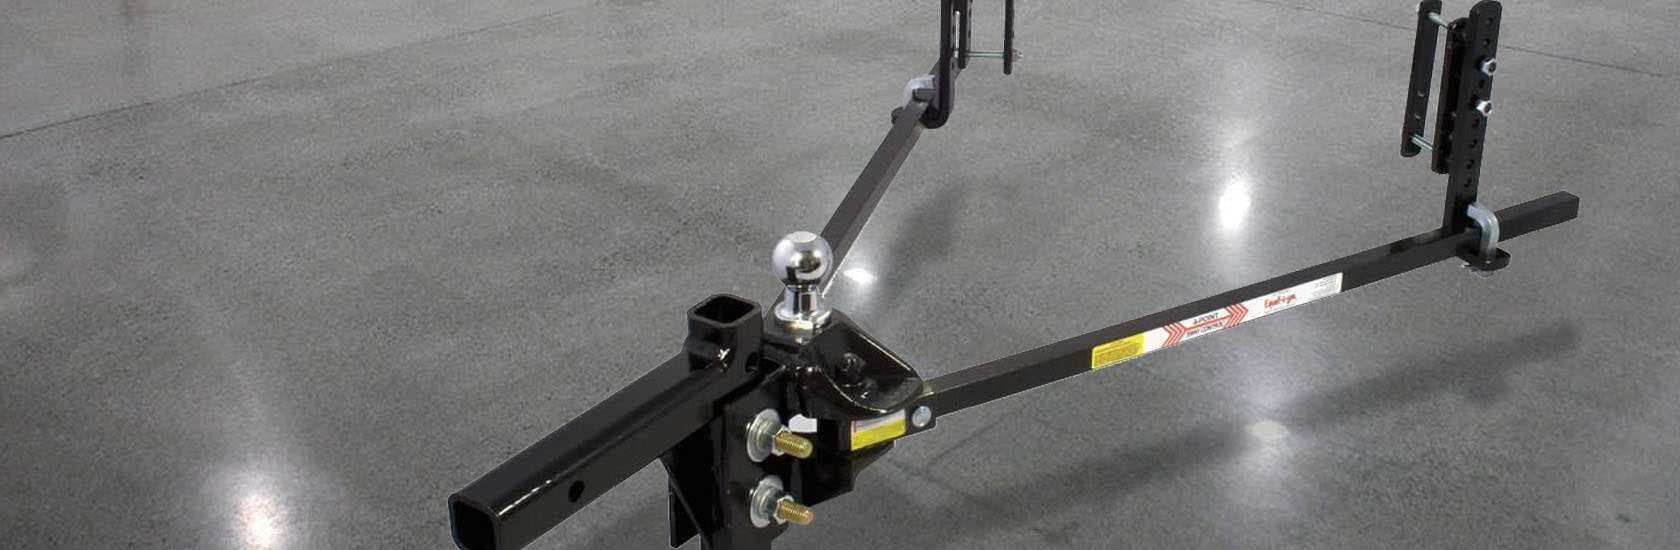 Exclusive Deals on Trailer Towing Accessories